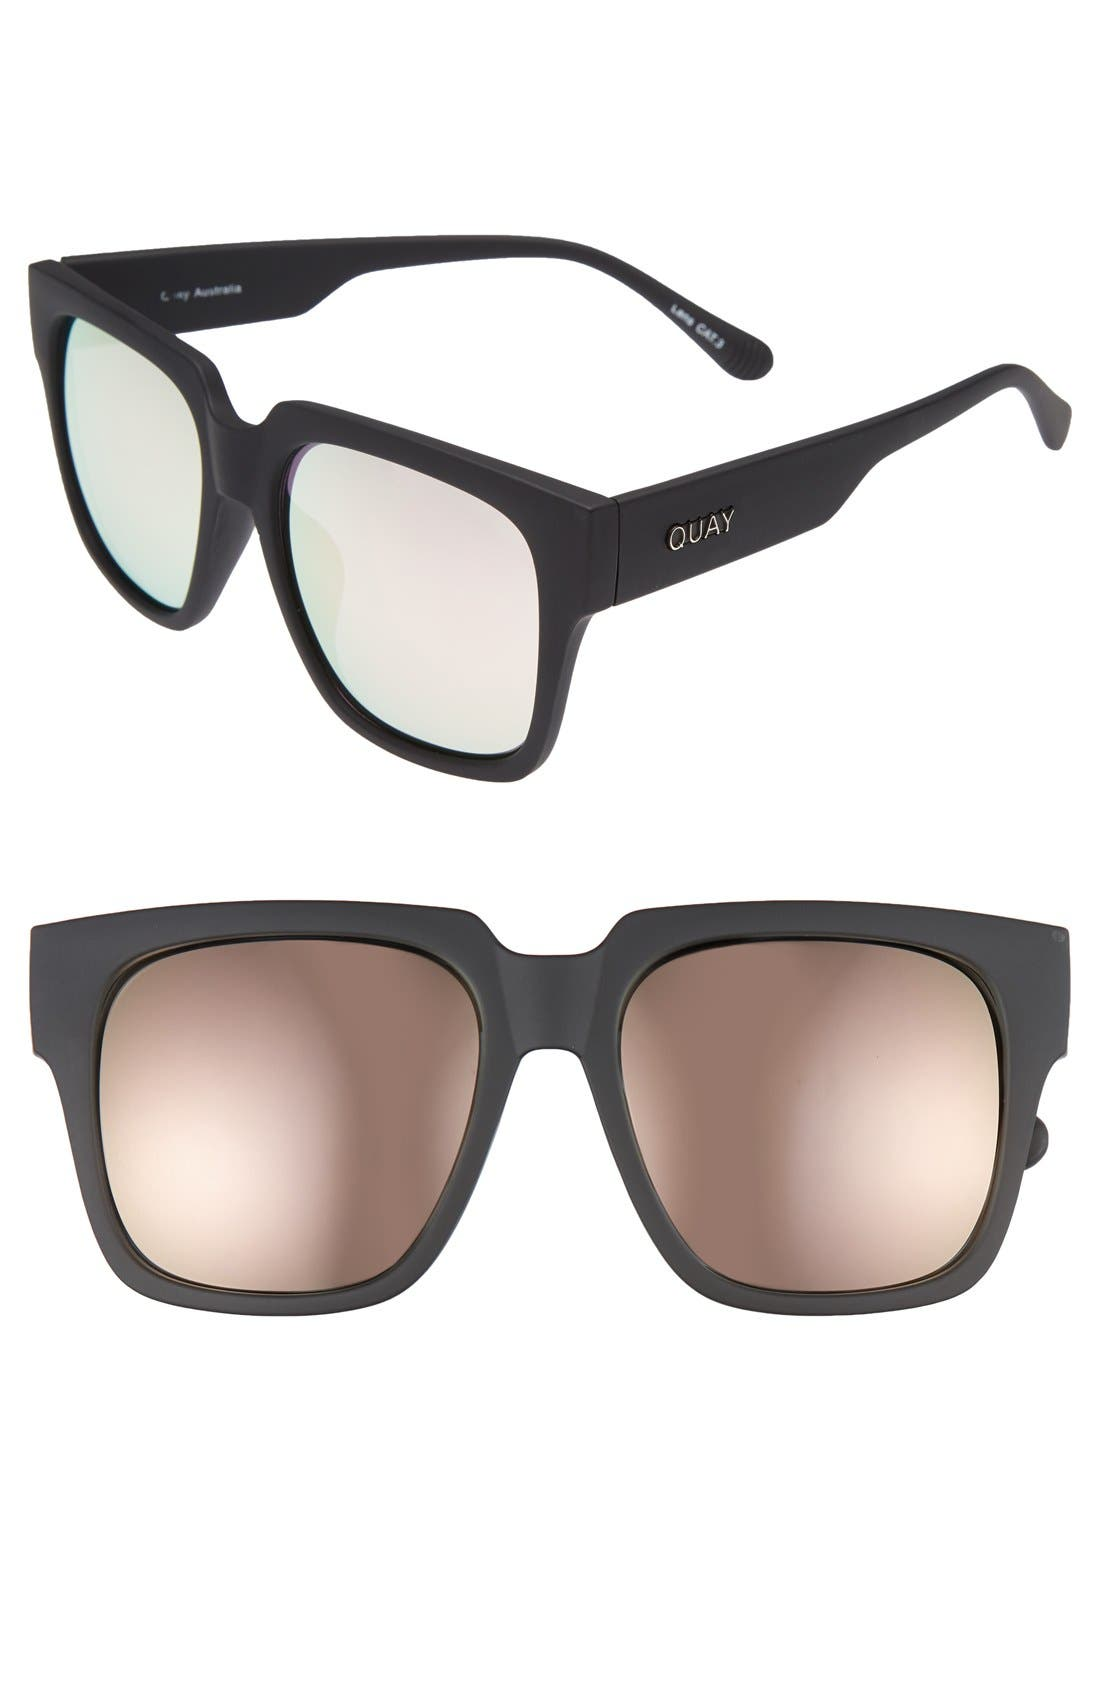 'On the Prowl' 55mm Square Sunglasses,                         Main,                         color, Black/ Pink Mirror